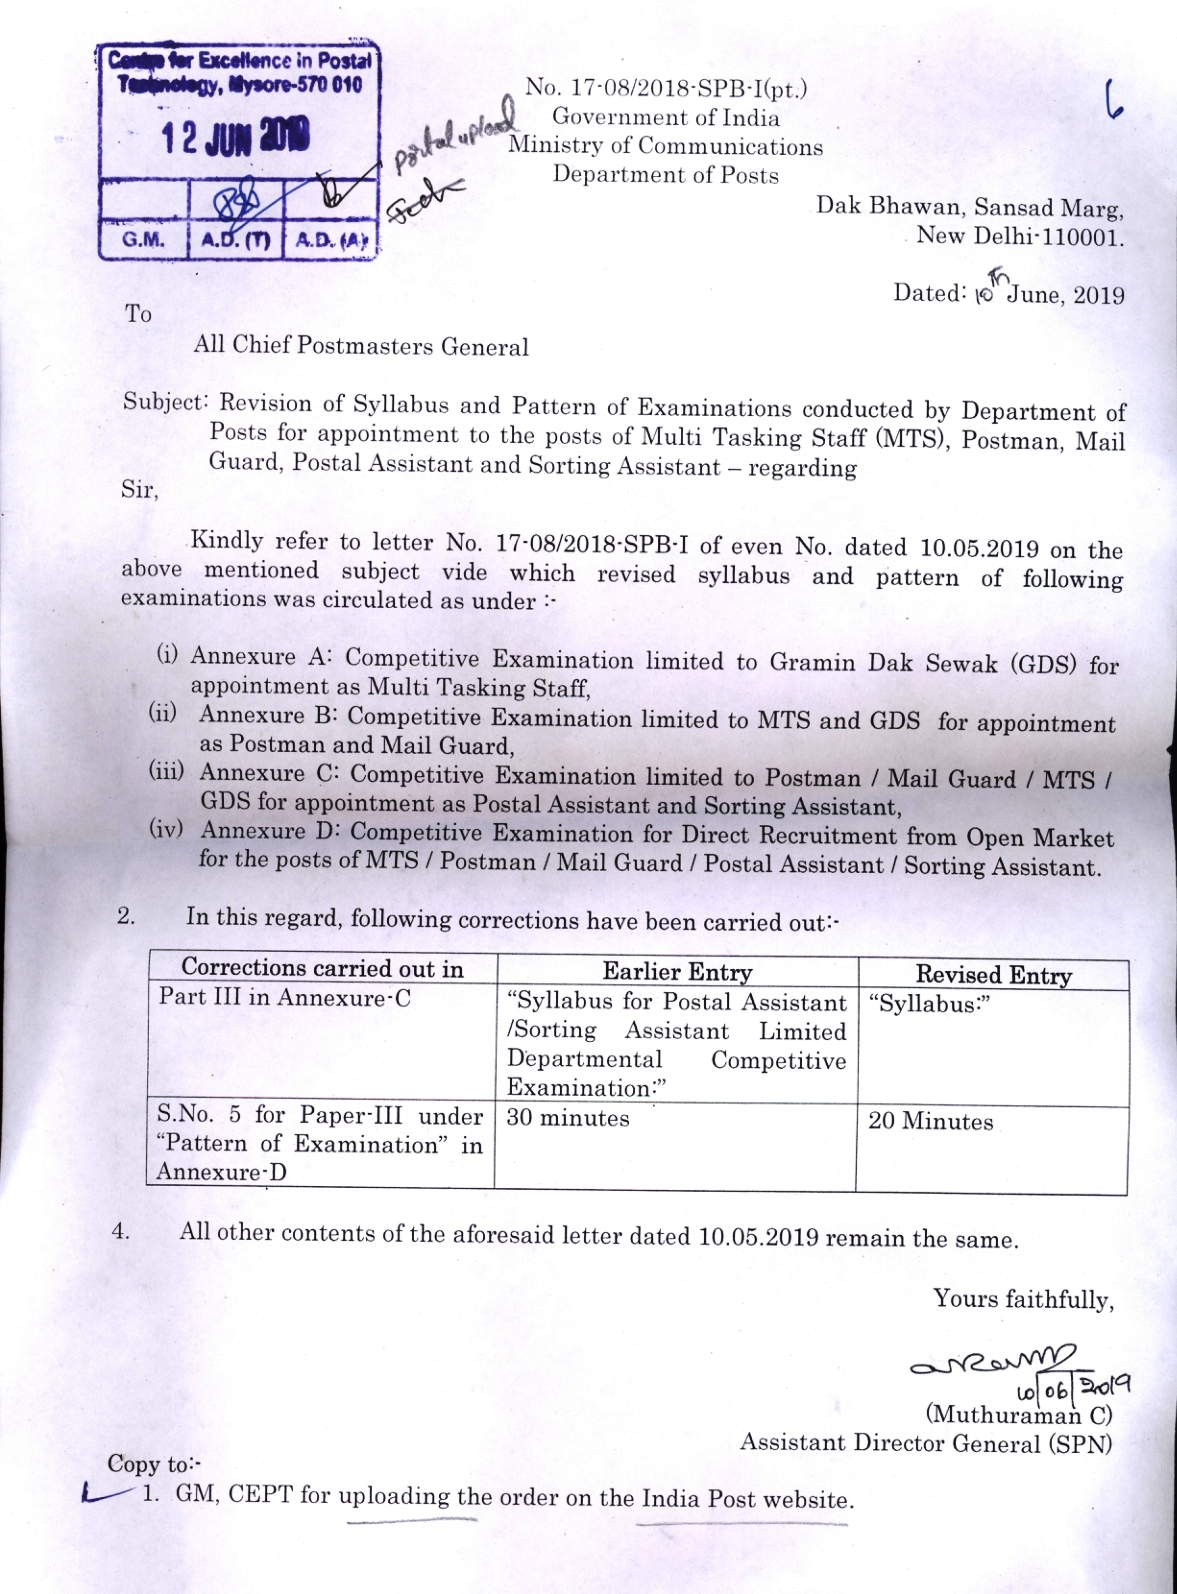 Revised Syllabus for Postal Assistant and Sorting Assistant Exam